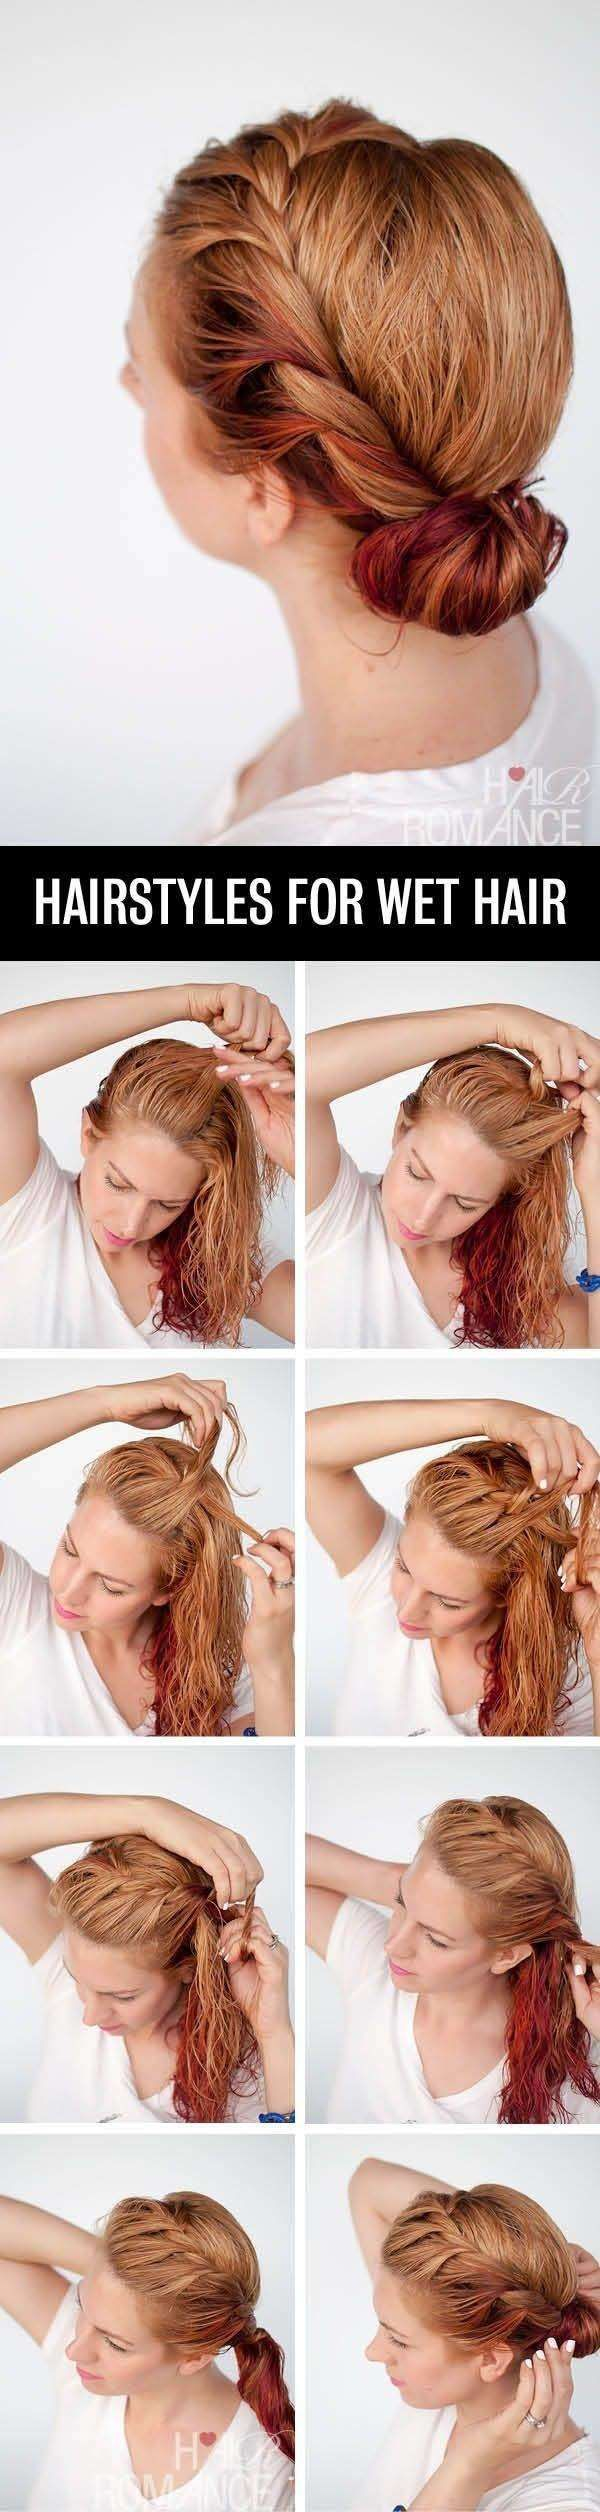 best braids images on pinterest haircut styles cute hairstyles